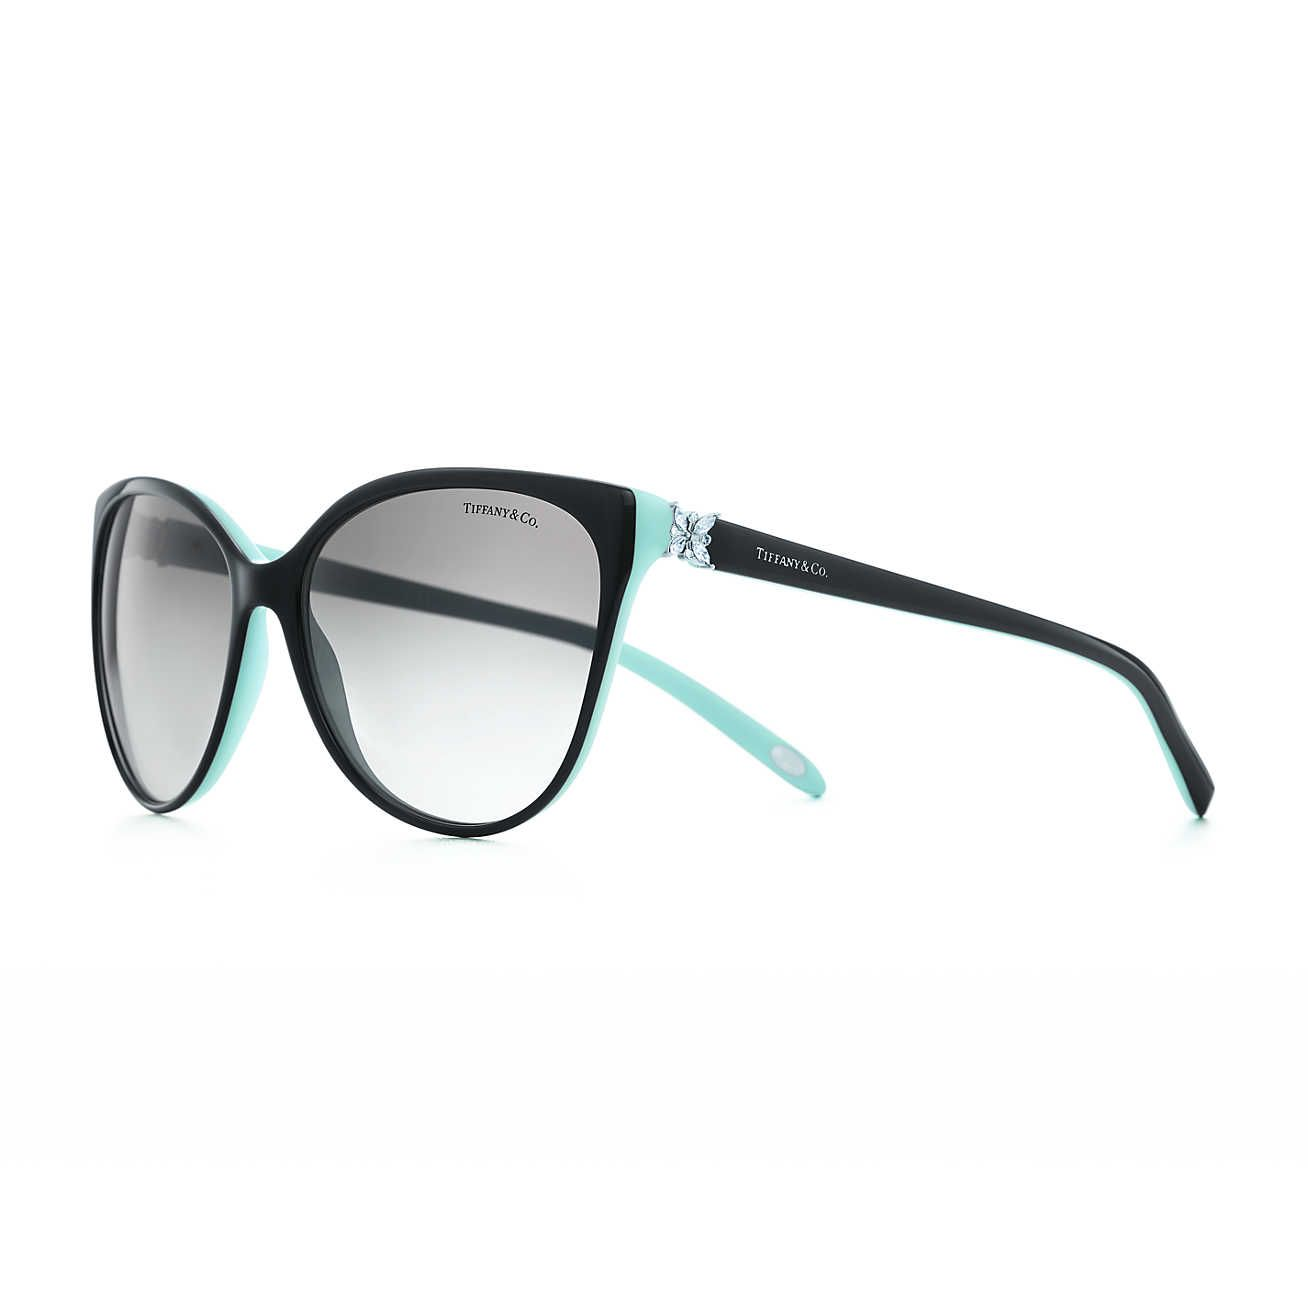 24211a0f61 Tiffany Victoria® cat eye sunglasses in acetate with Austrian crystals.